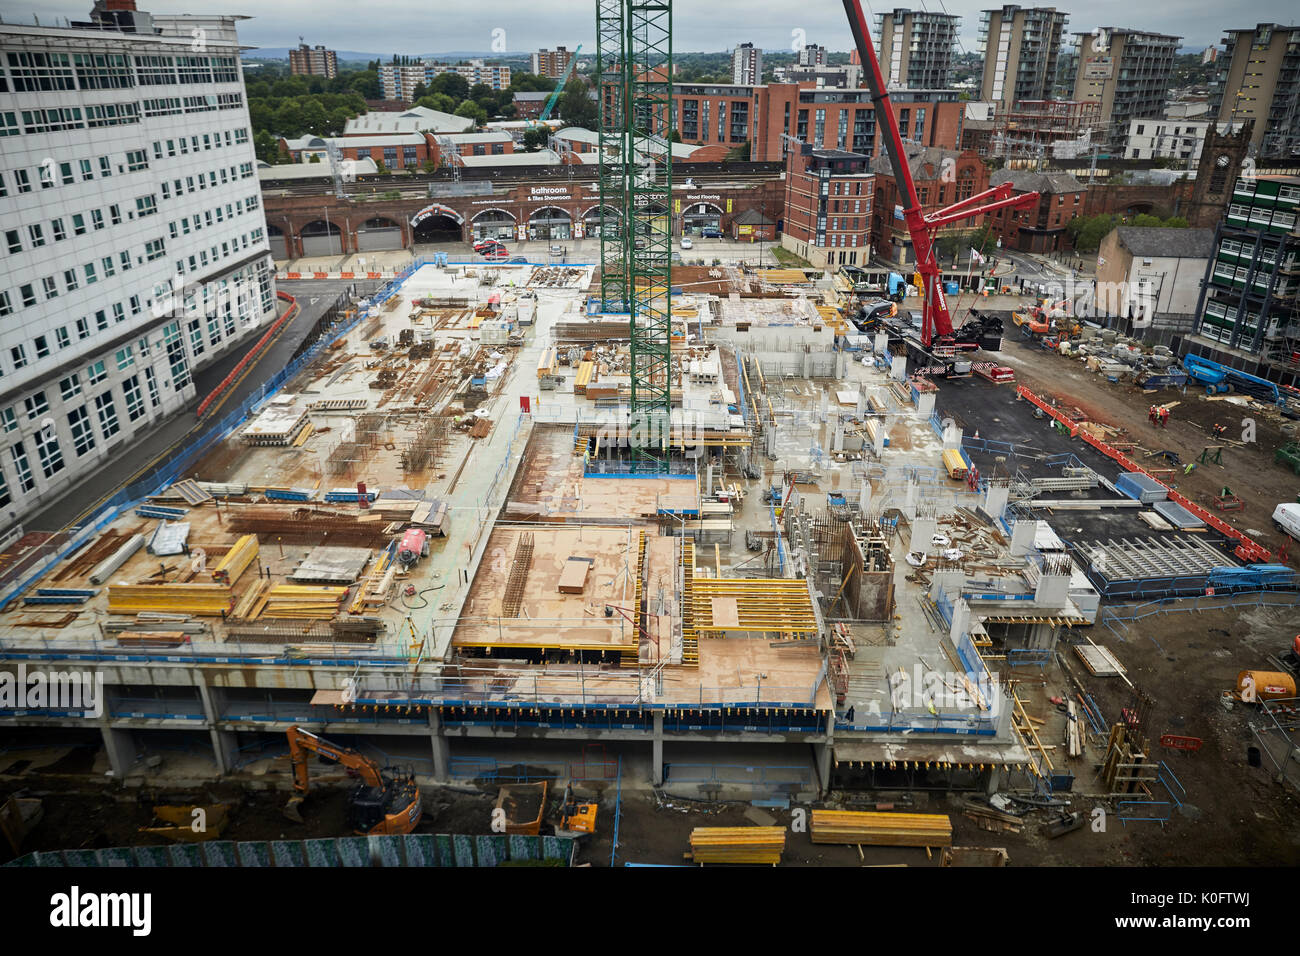 Groundwork foundations of a  new Chapel Wharf scheme by Dandara - developers will include a new Lowry Hotel car park, Manchester. - Stock Image